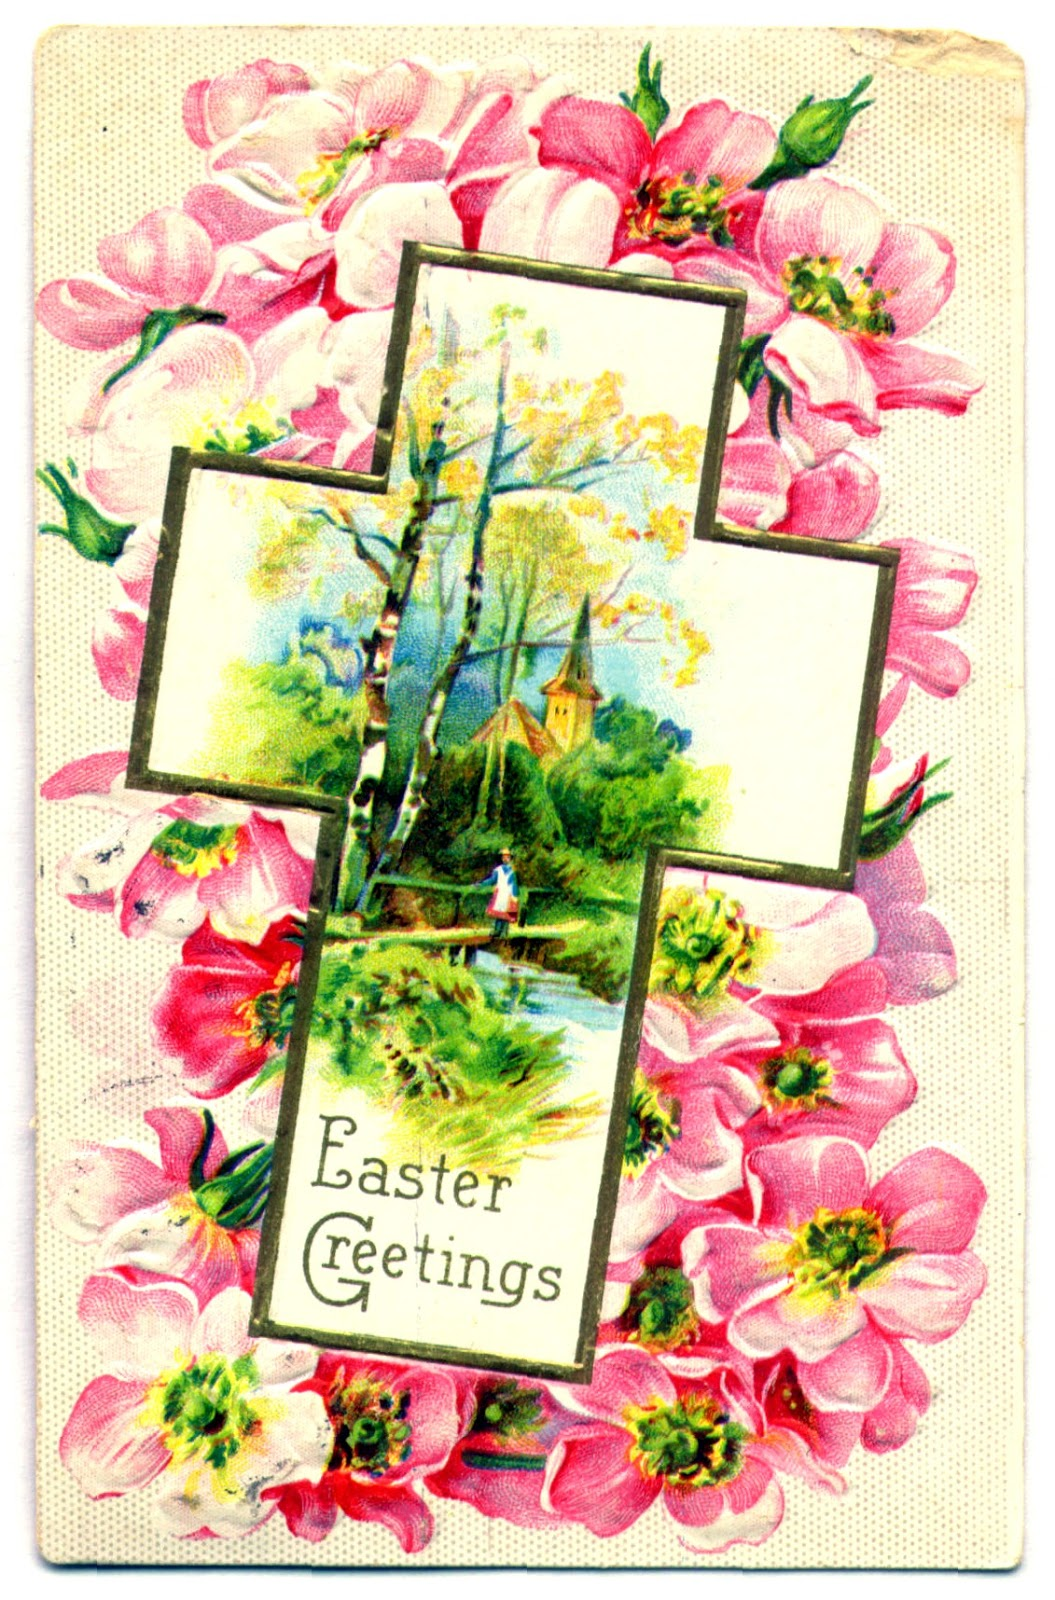 Nostalgic Needleart Easter Greetings From Vintage Vogue